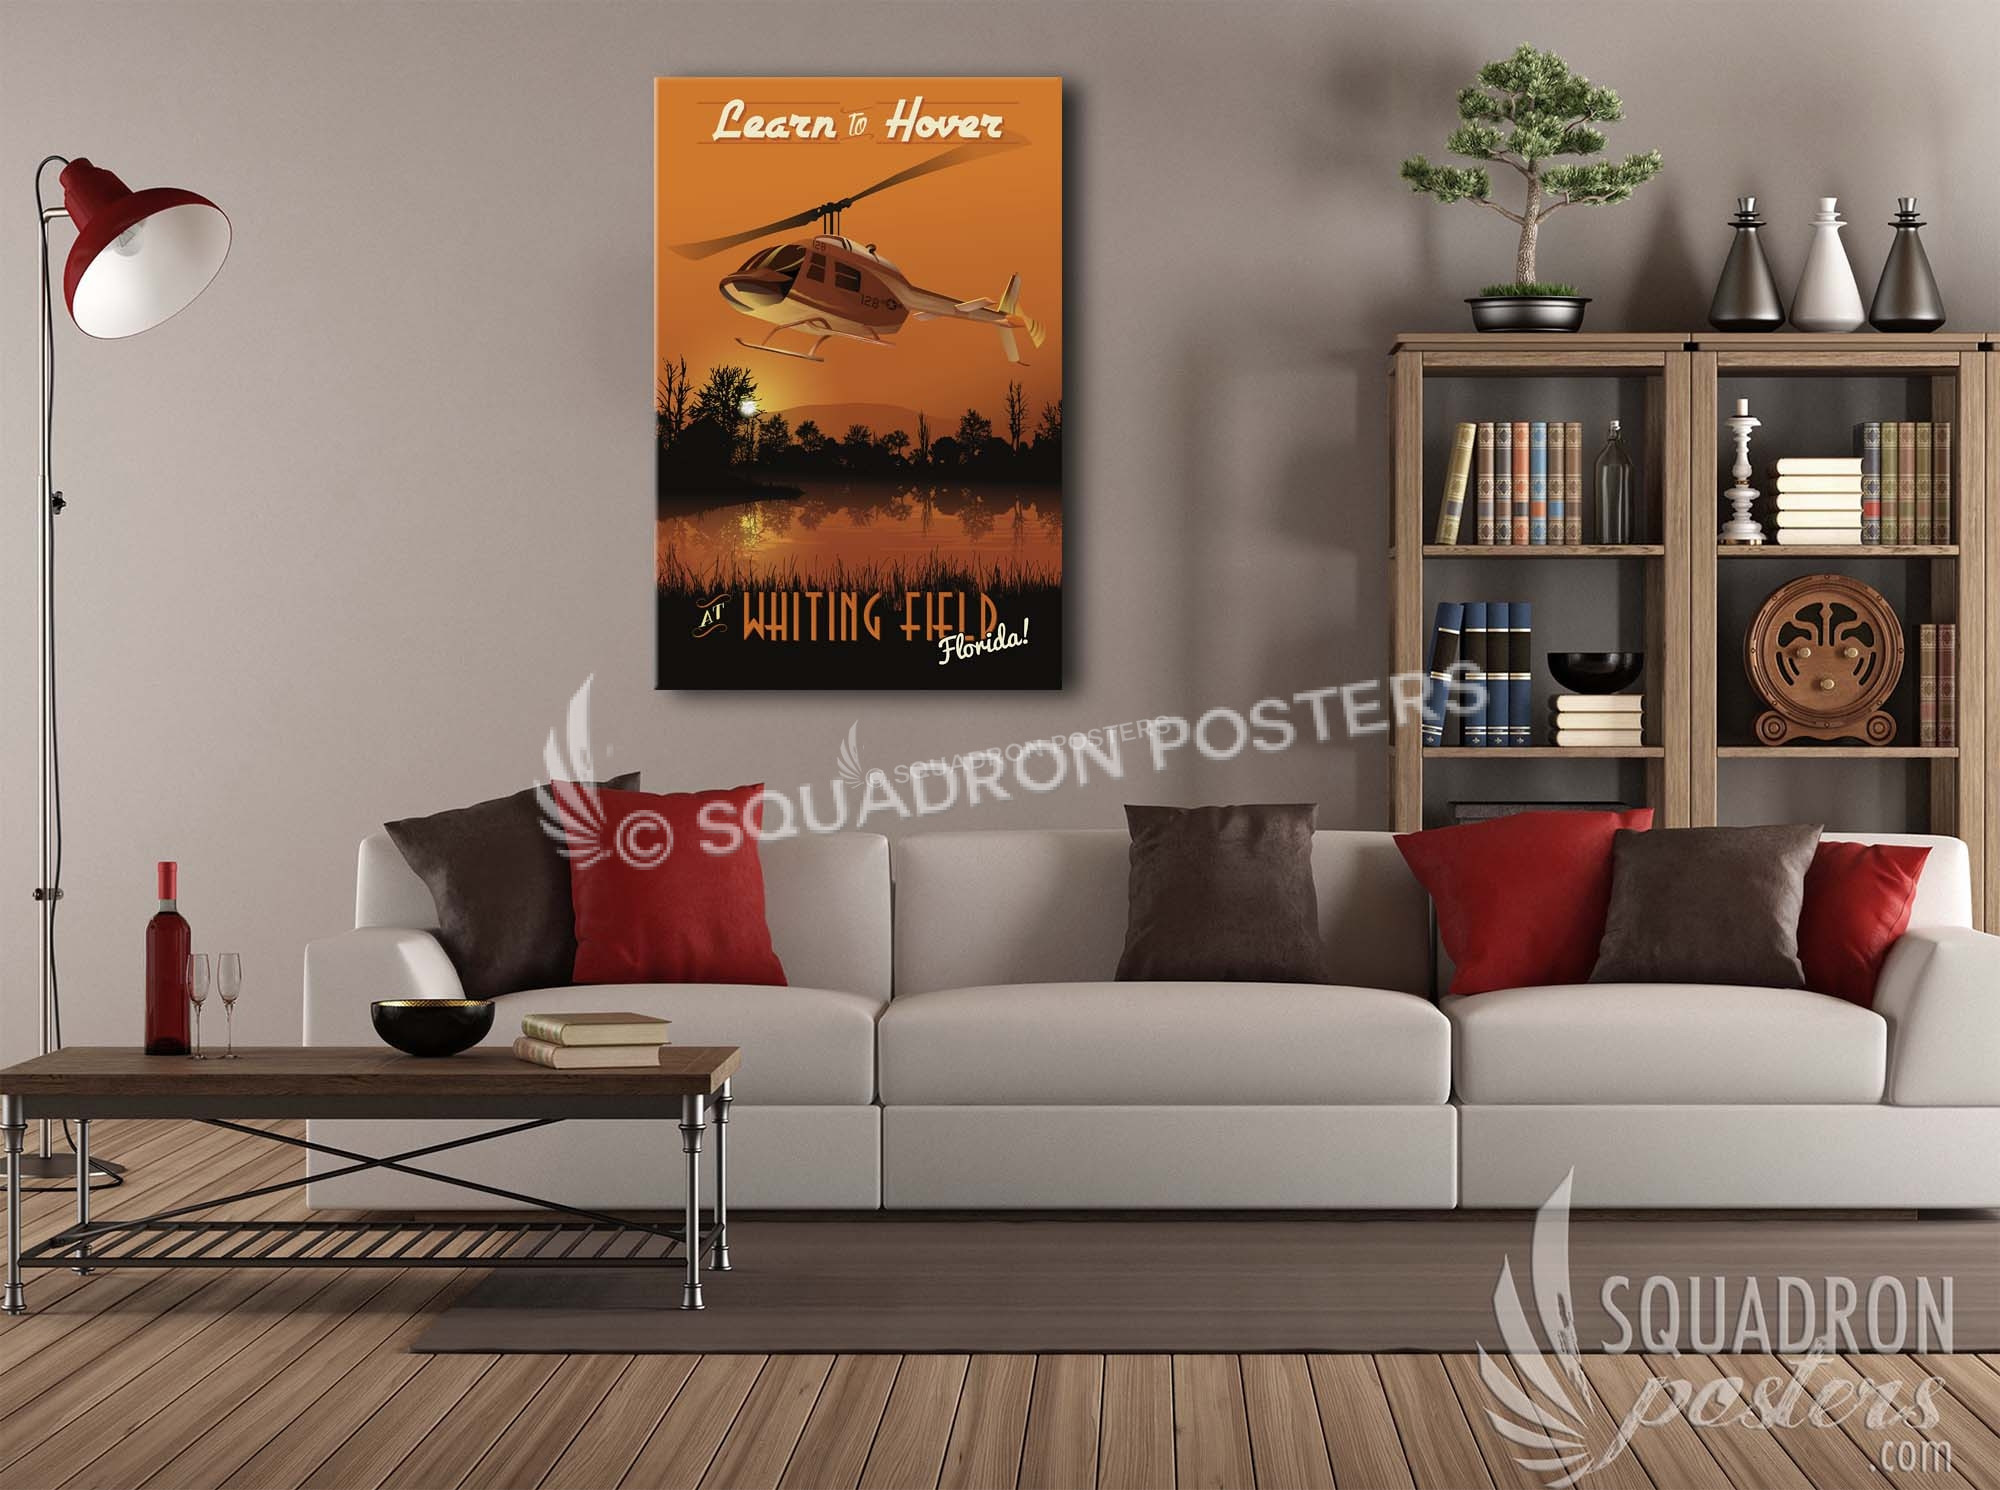 nas whiting field learn to hover squadron posters